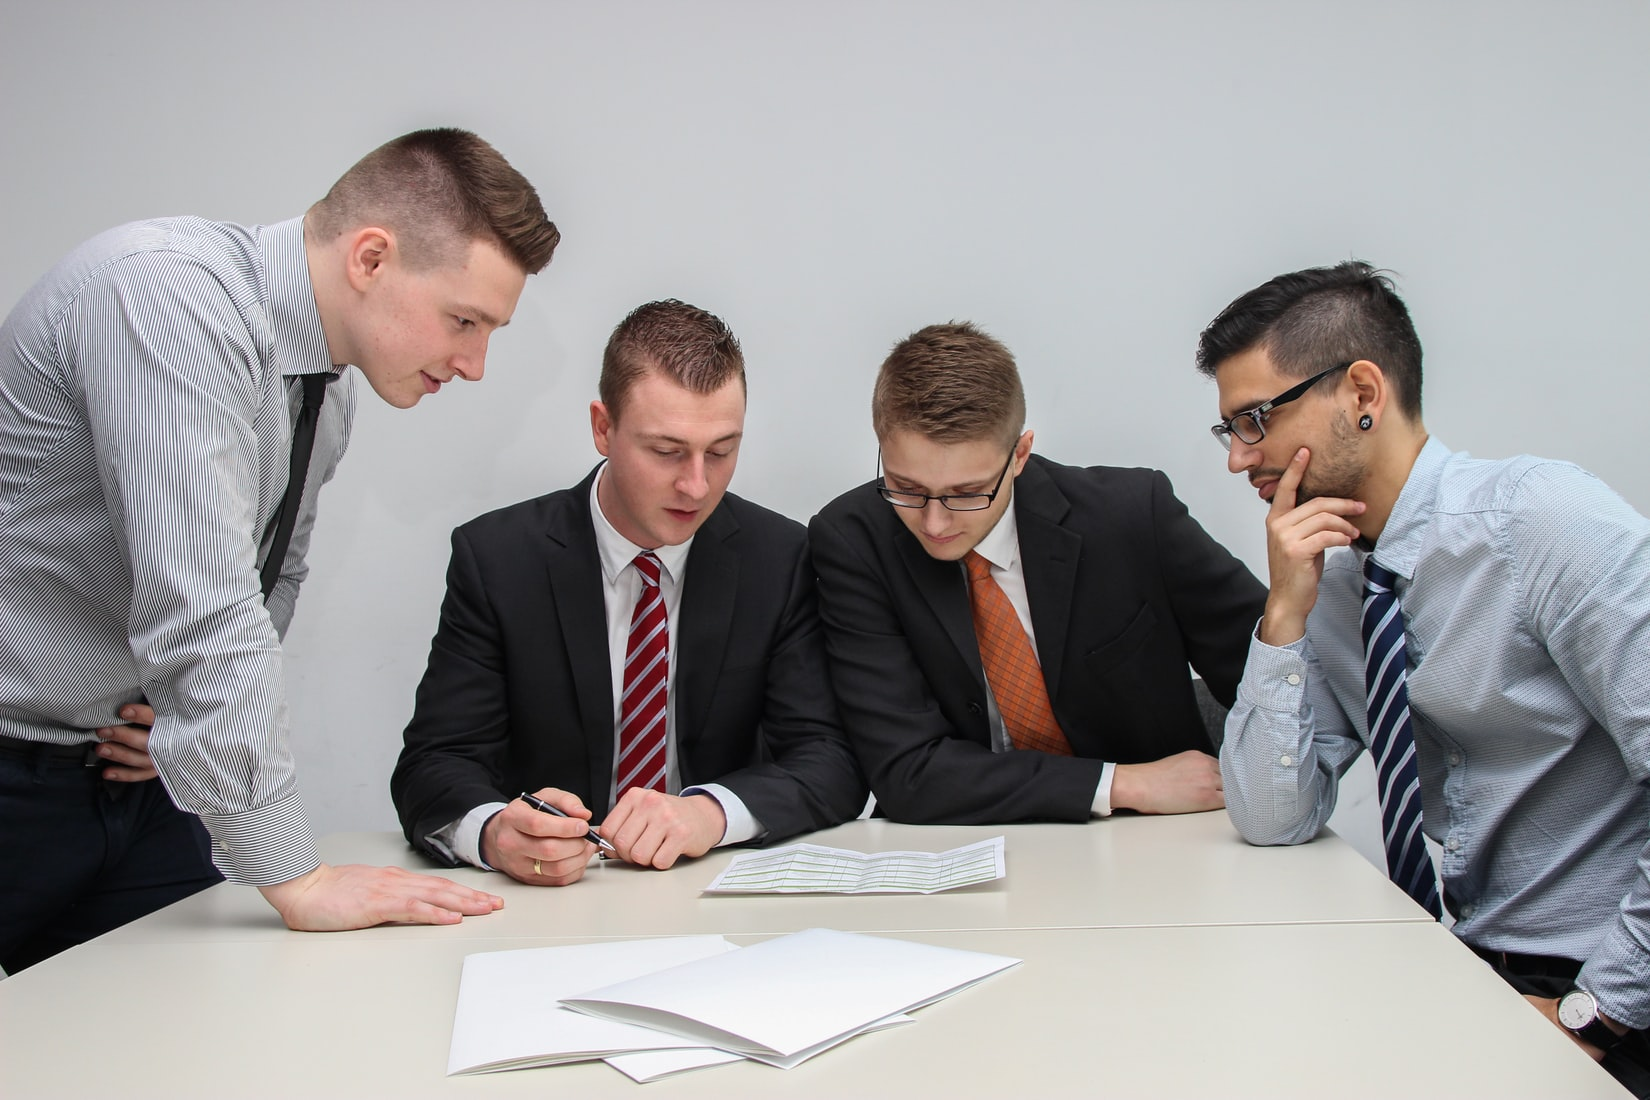 business men sitting around a white table looking at a document.